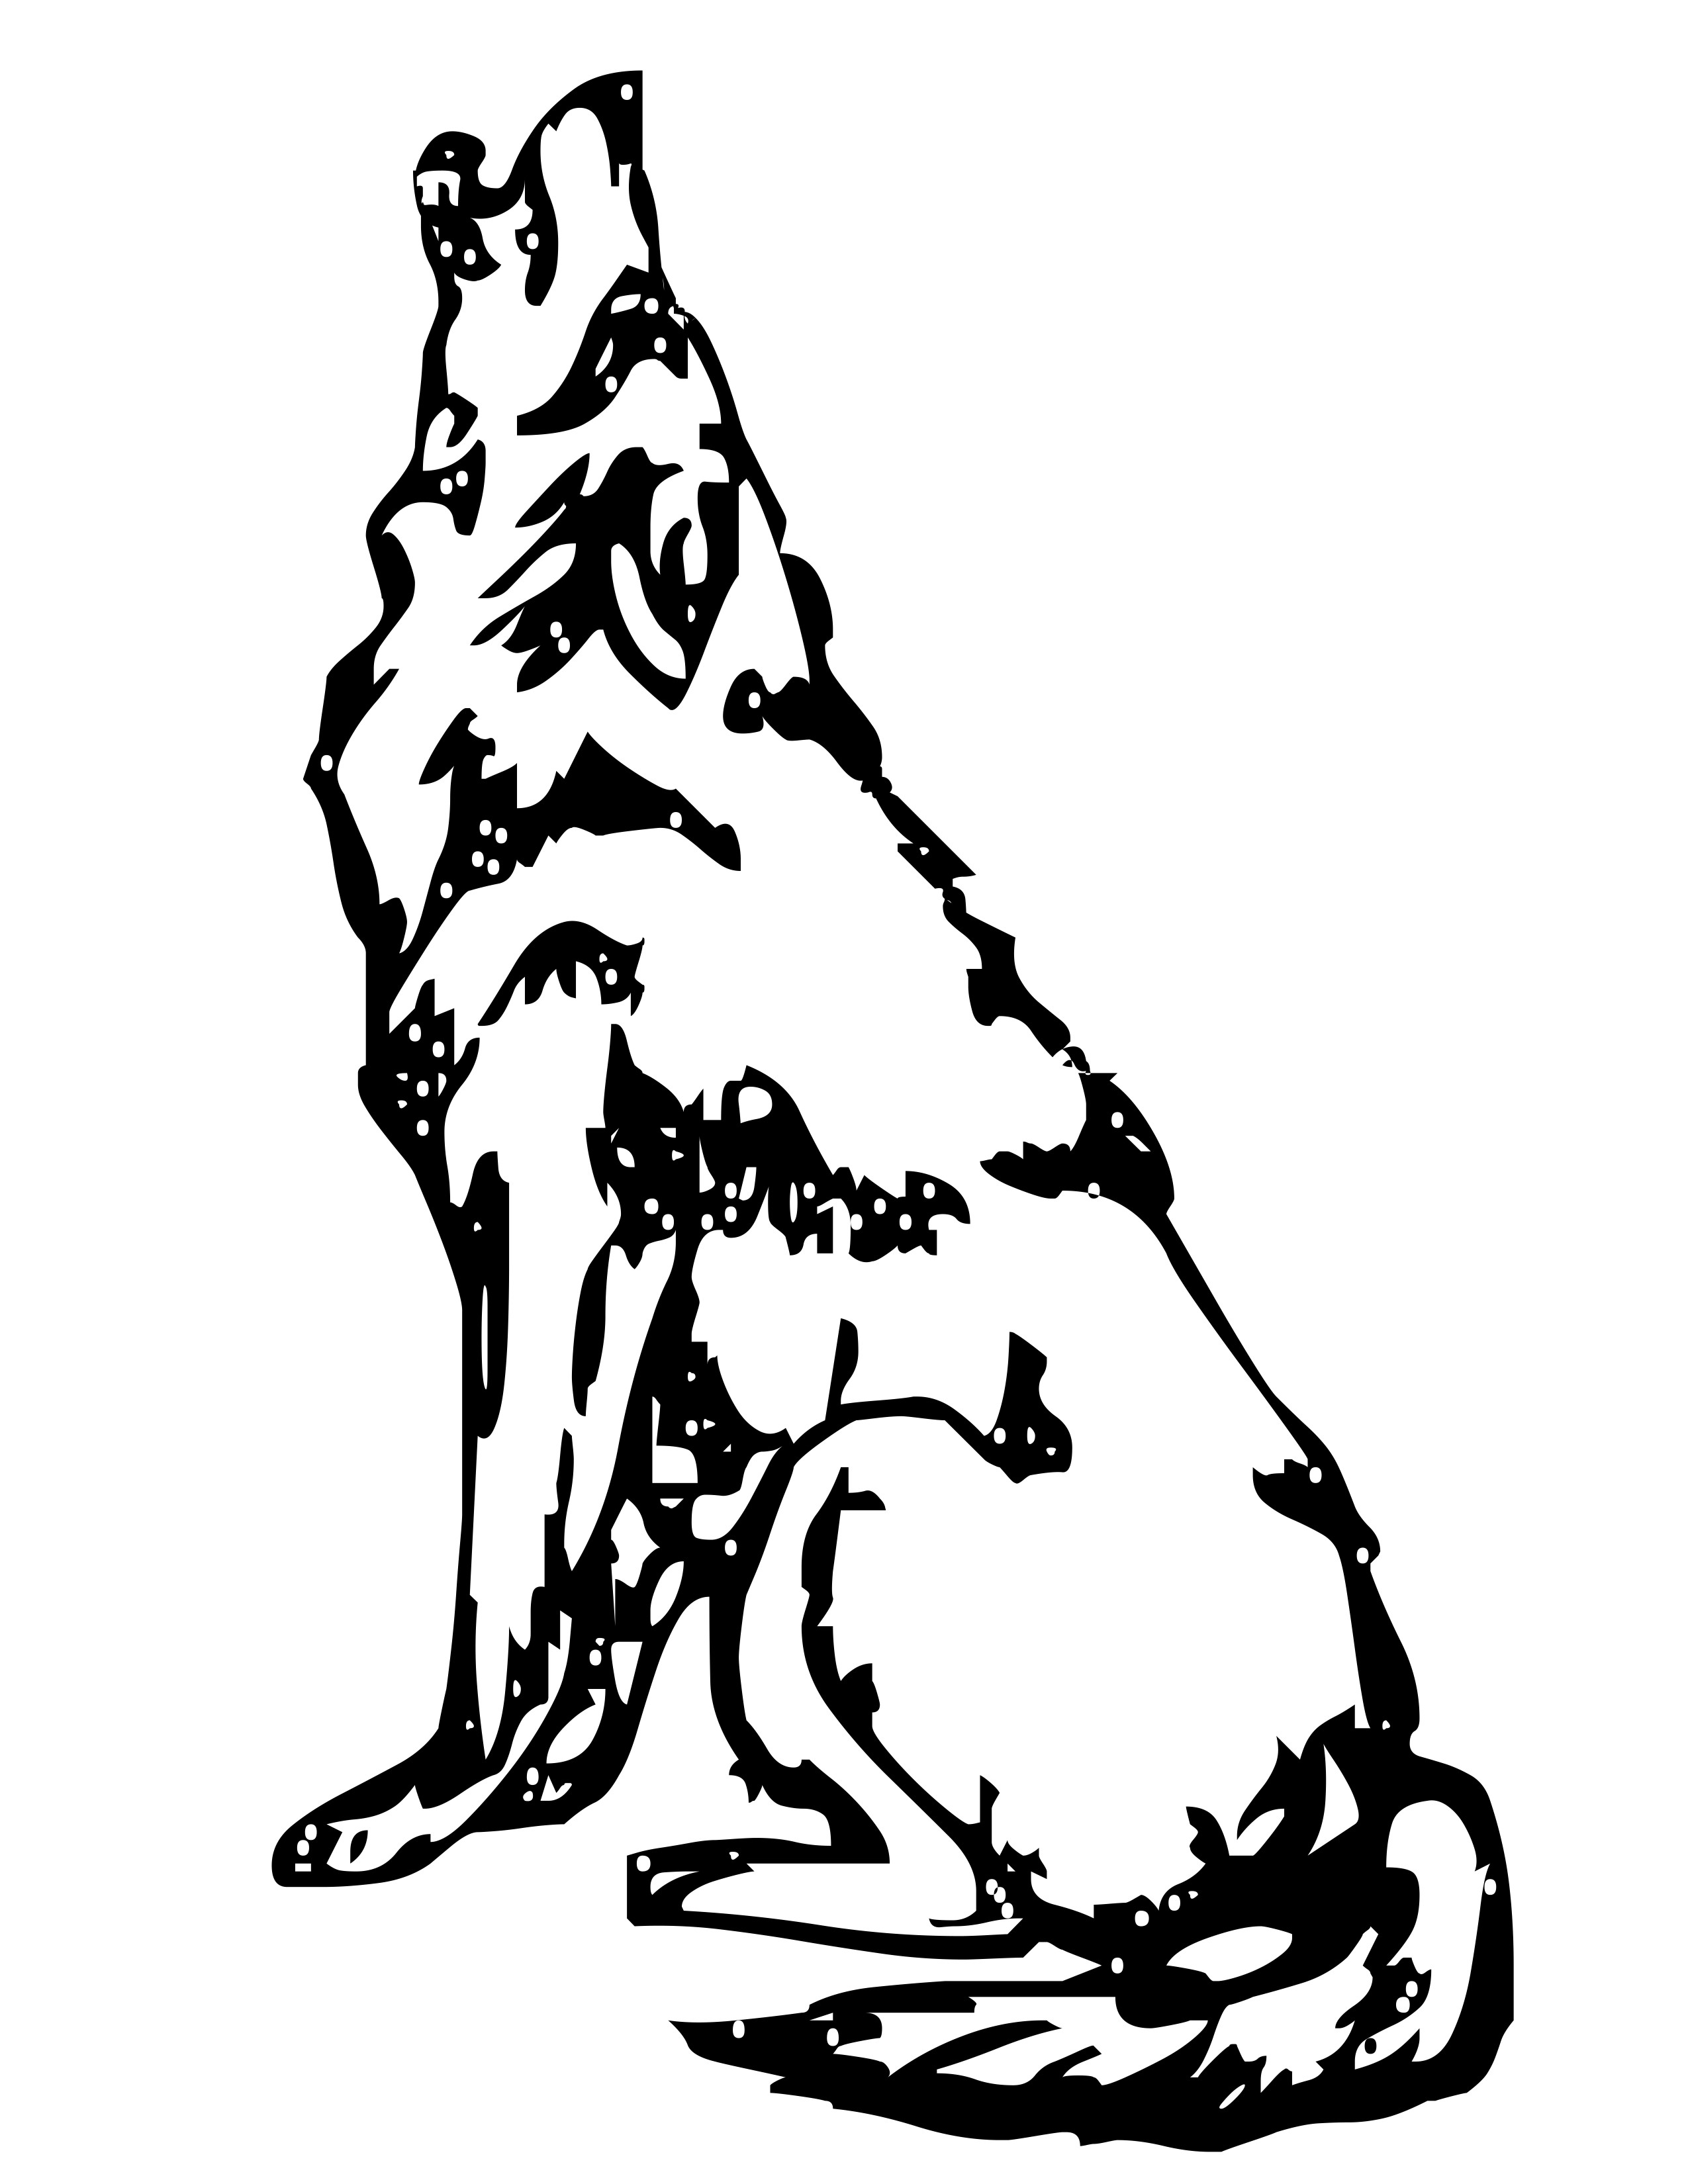 Coyote Clipart Black And White